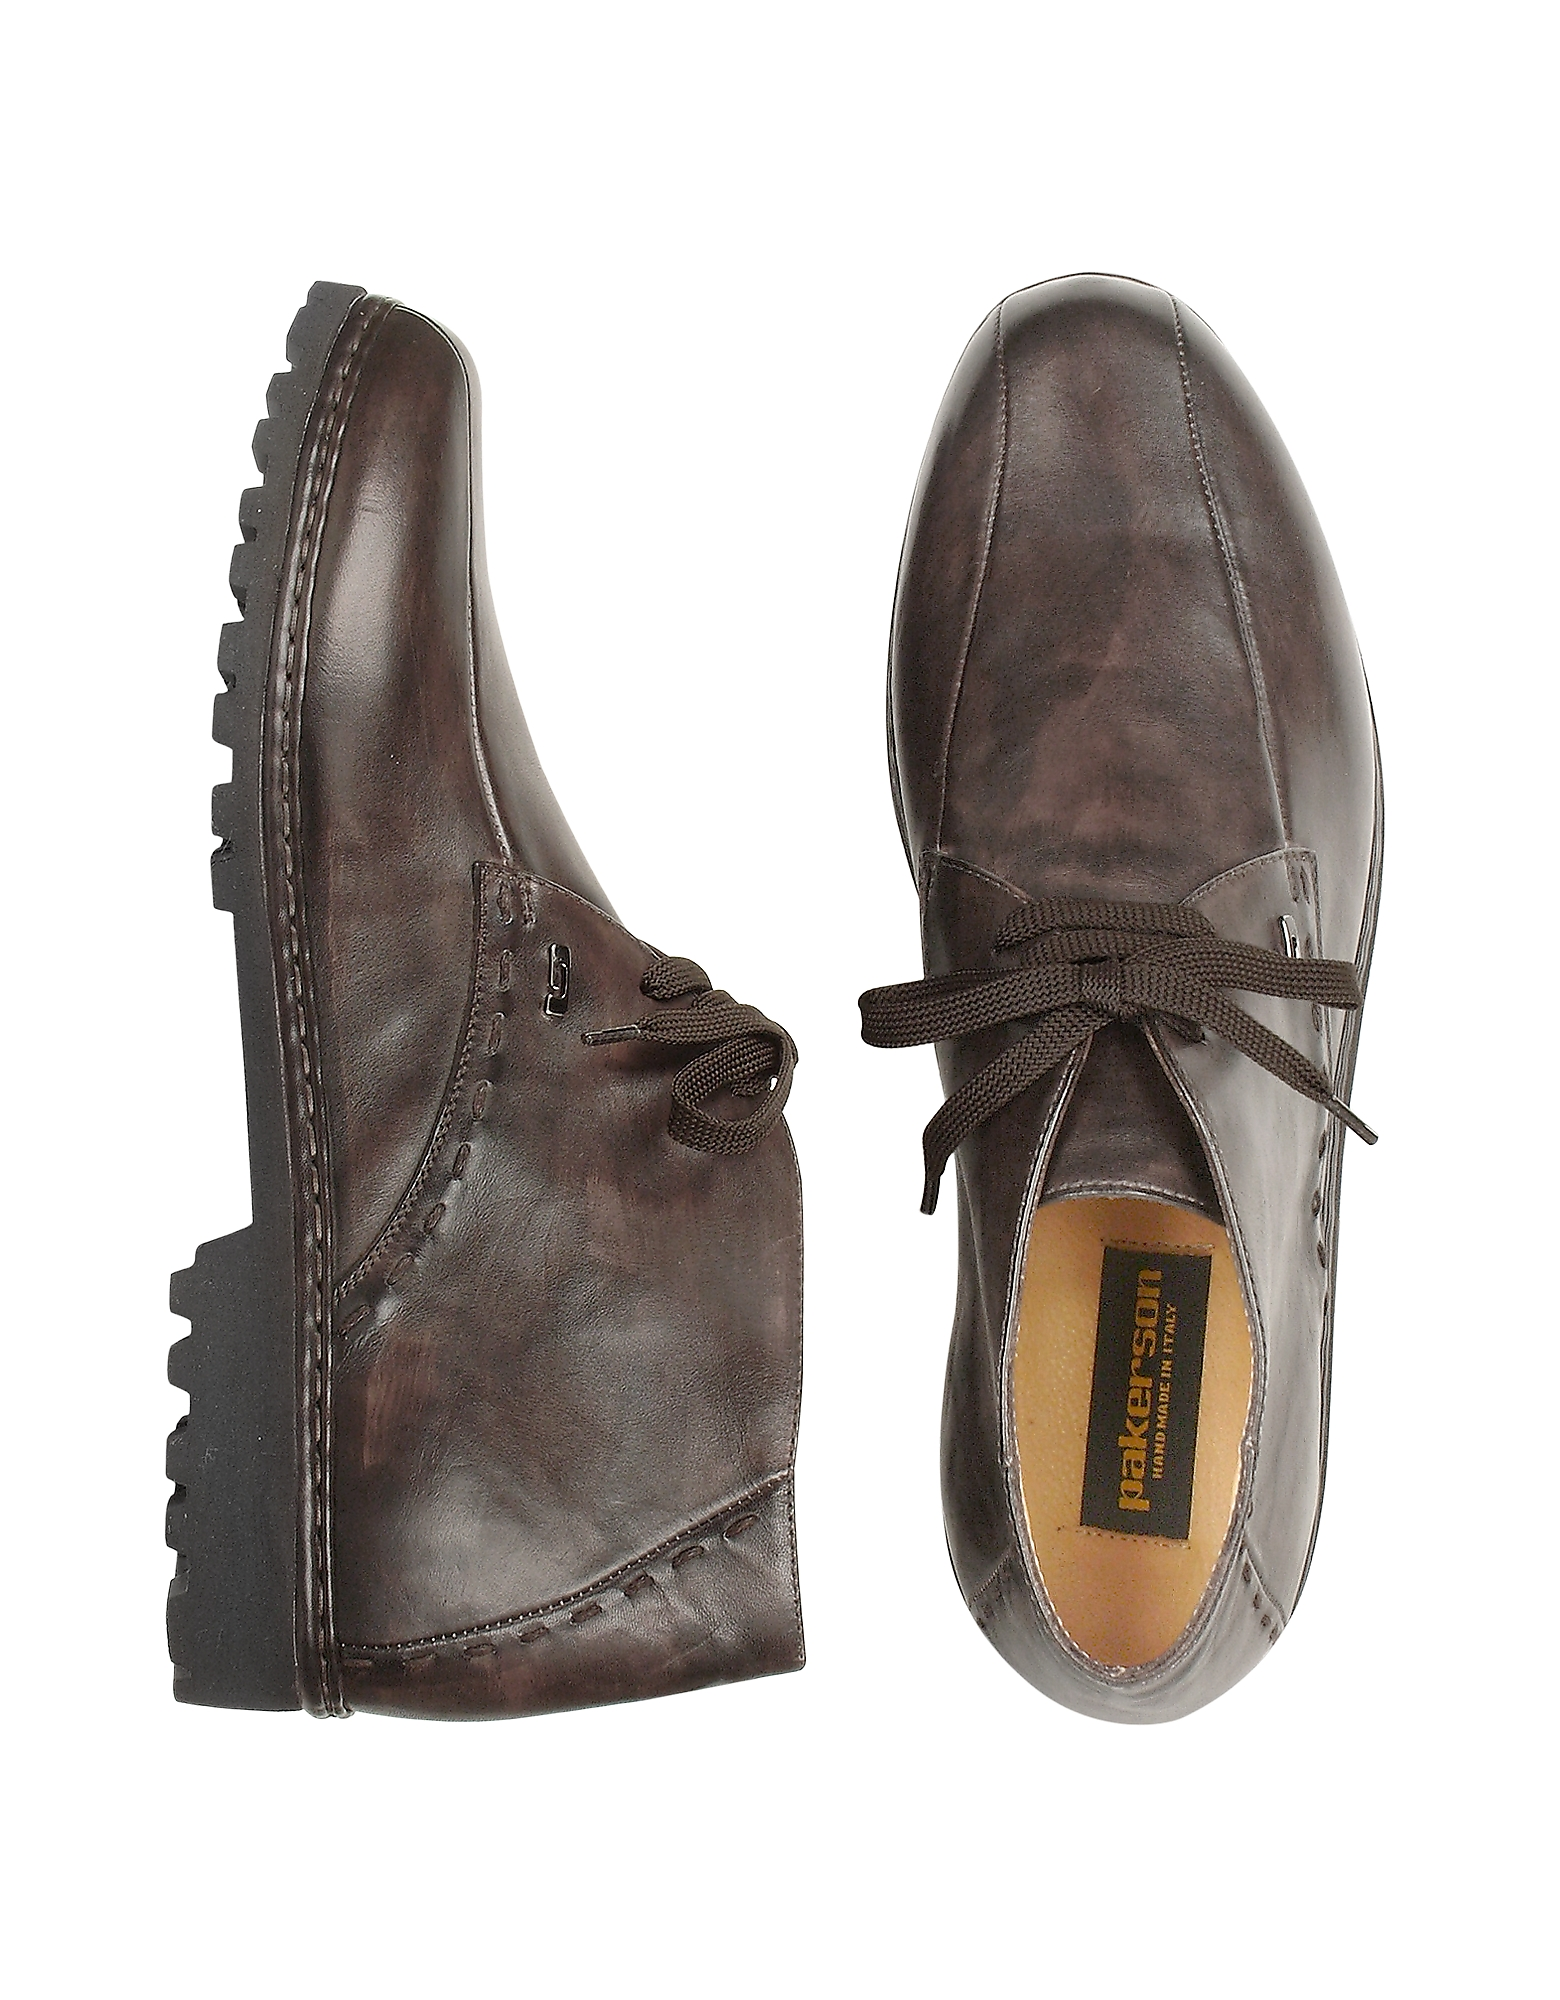 Pakerson Shoes, Dark Brown Handmade Italian Leather Ankle Boots